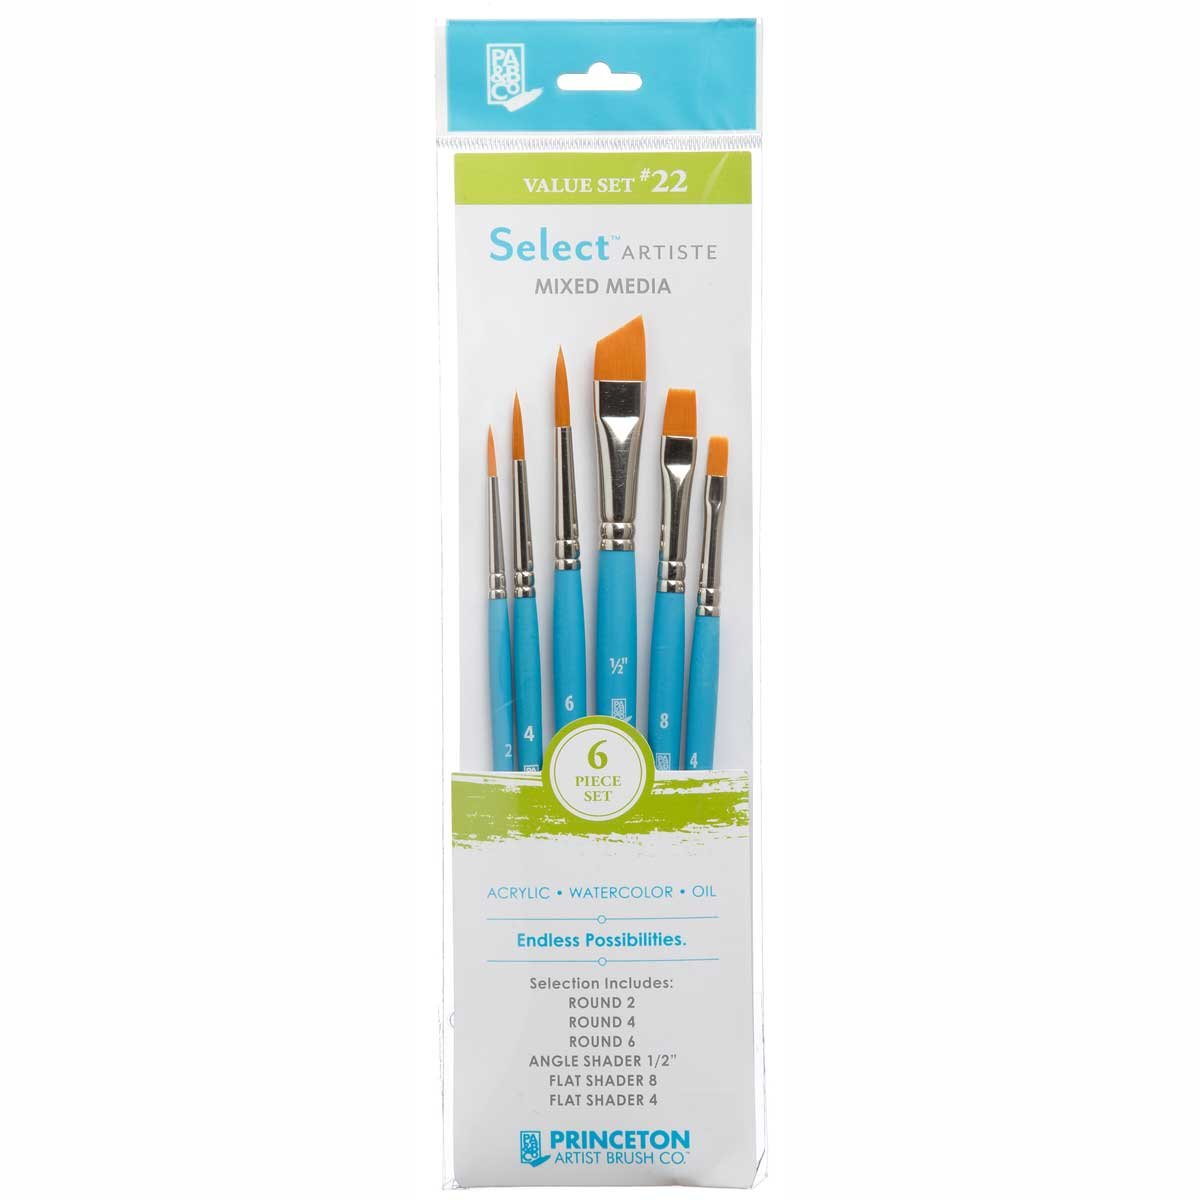 Princeton Select Artiste, Mixed-Media Brushes for Acrylic, Oil, Watercolor Series 3750, 7 Piece Value Set 123